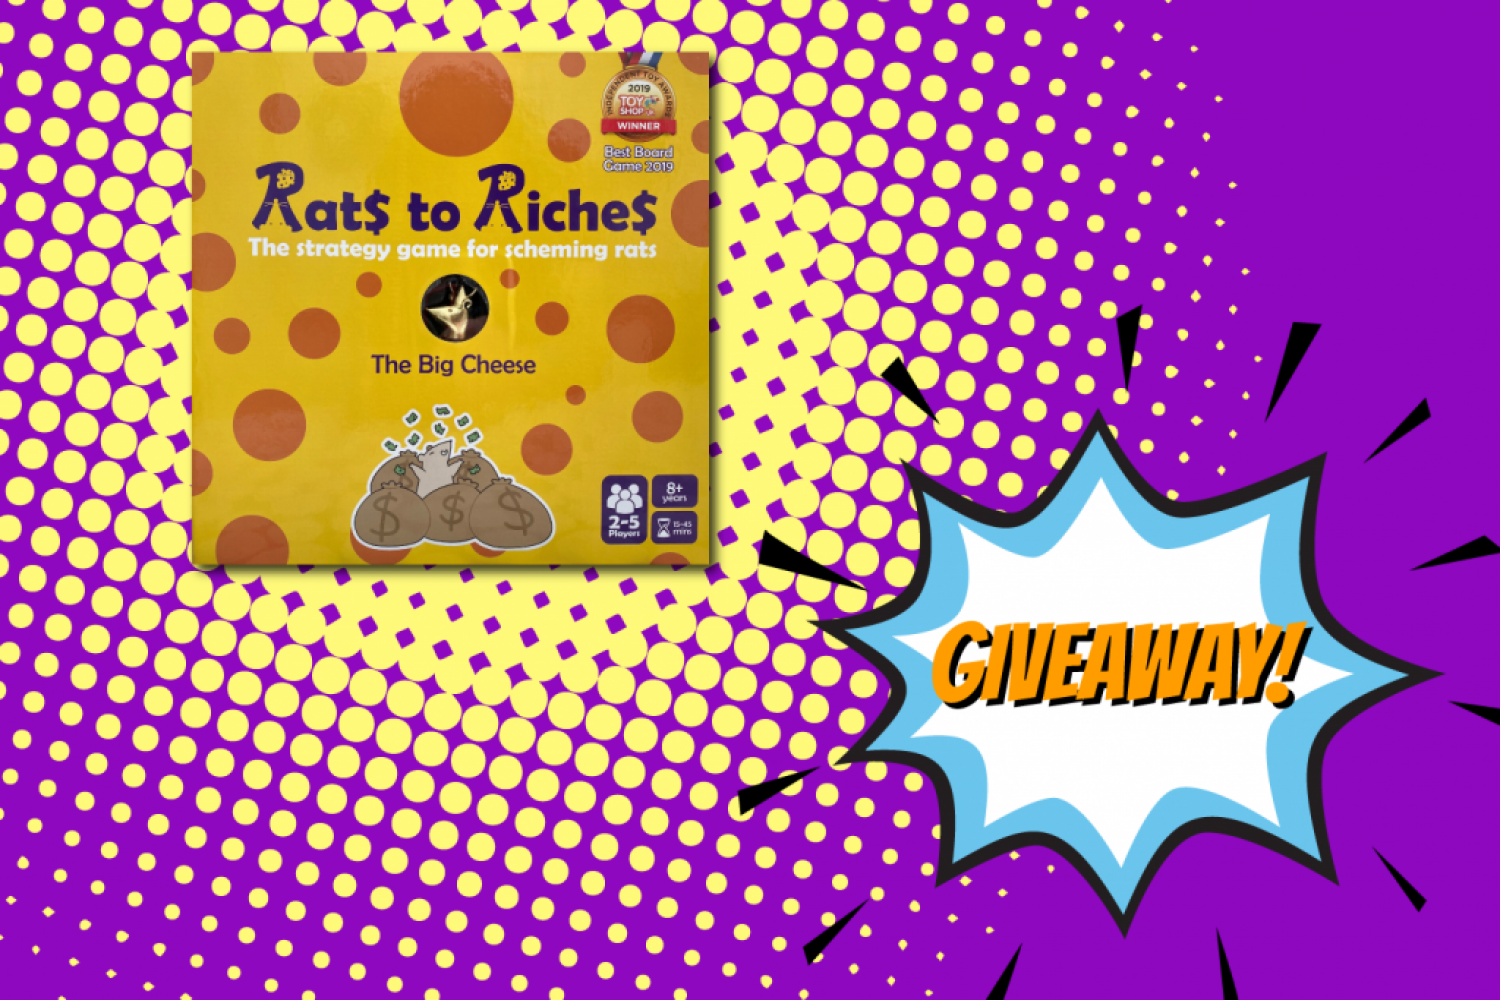 Rats-To-Riches-Giveaway-Header-Image